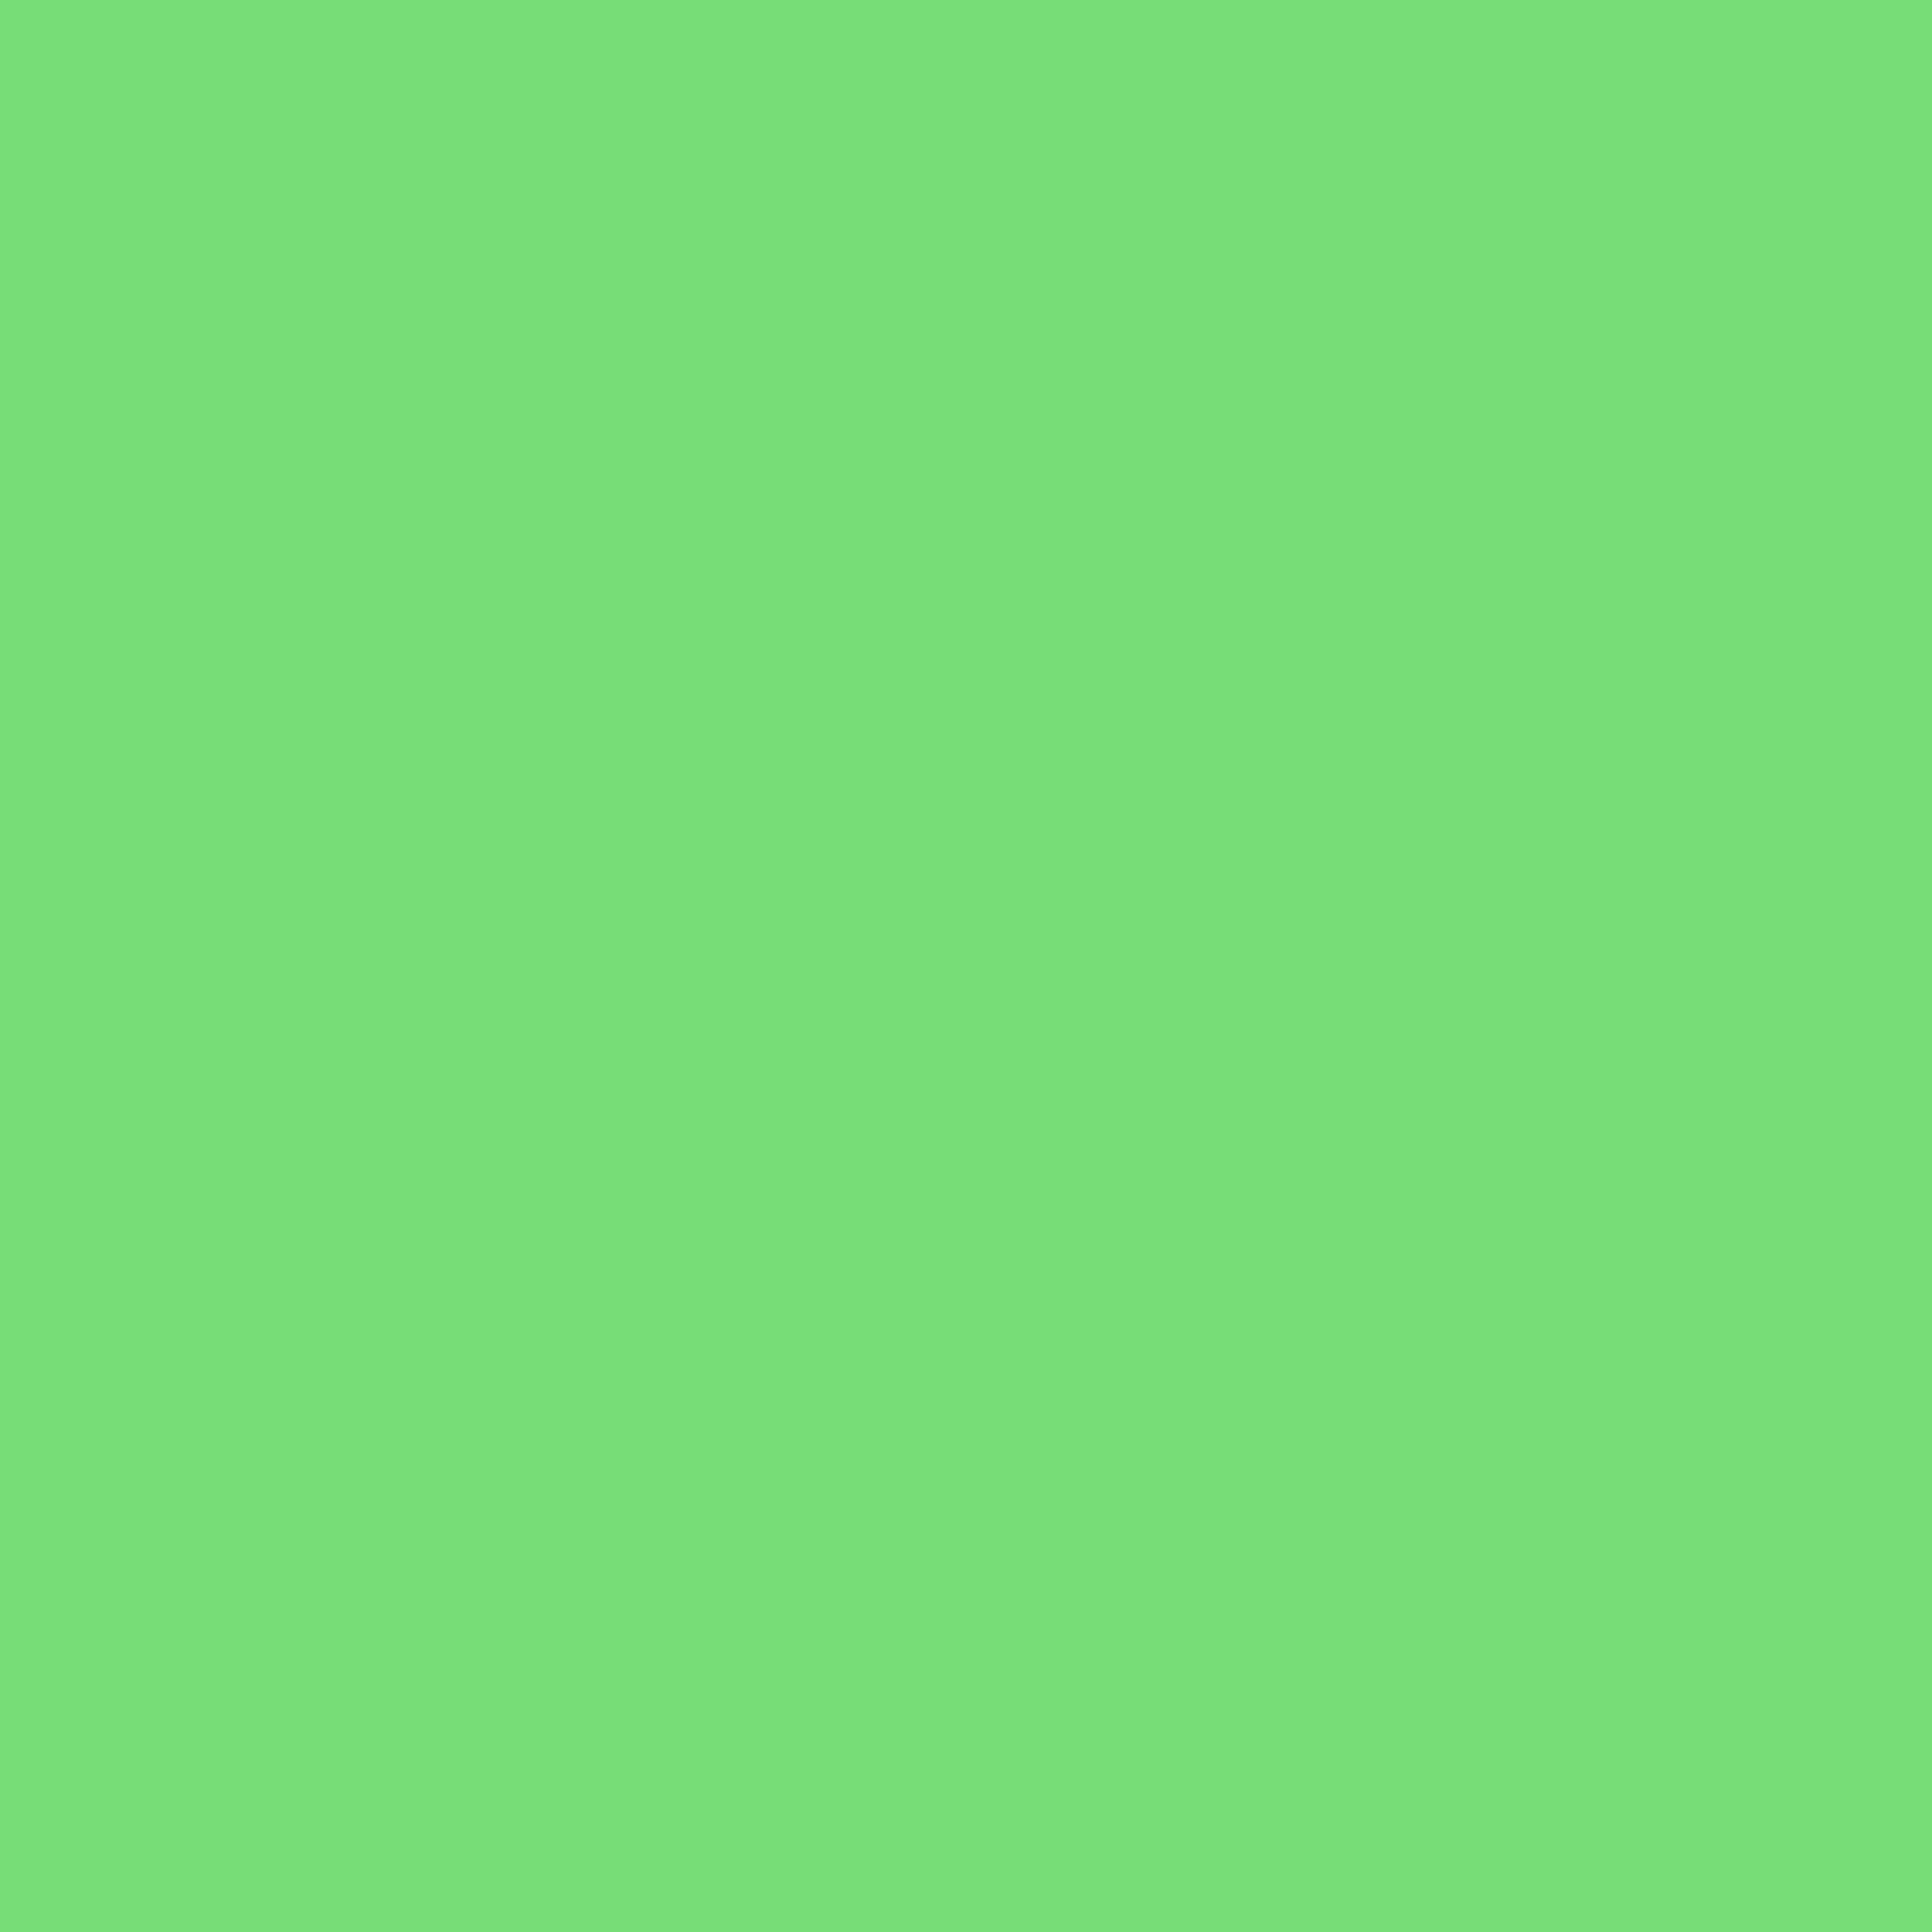 3600x3600 Pastel Green Solid Color Background